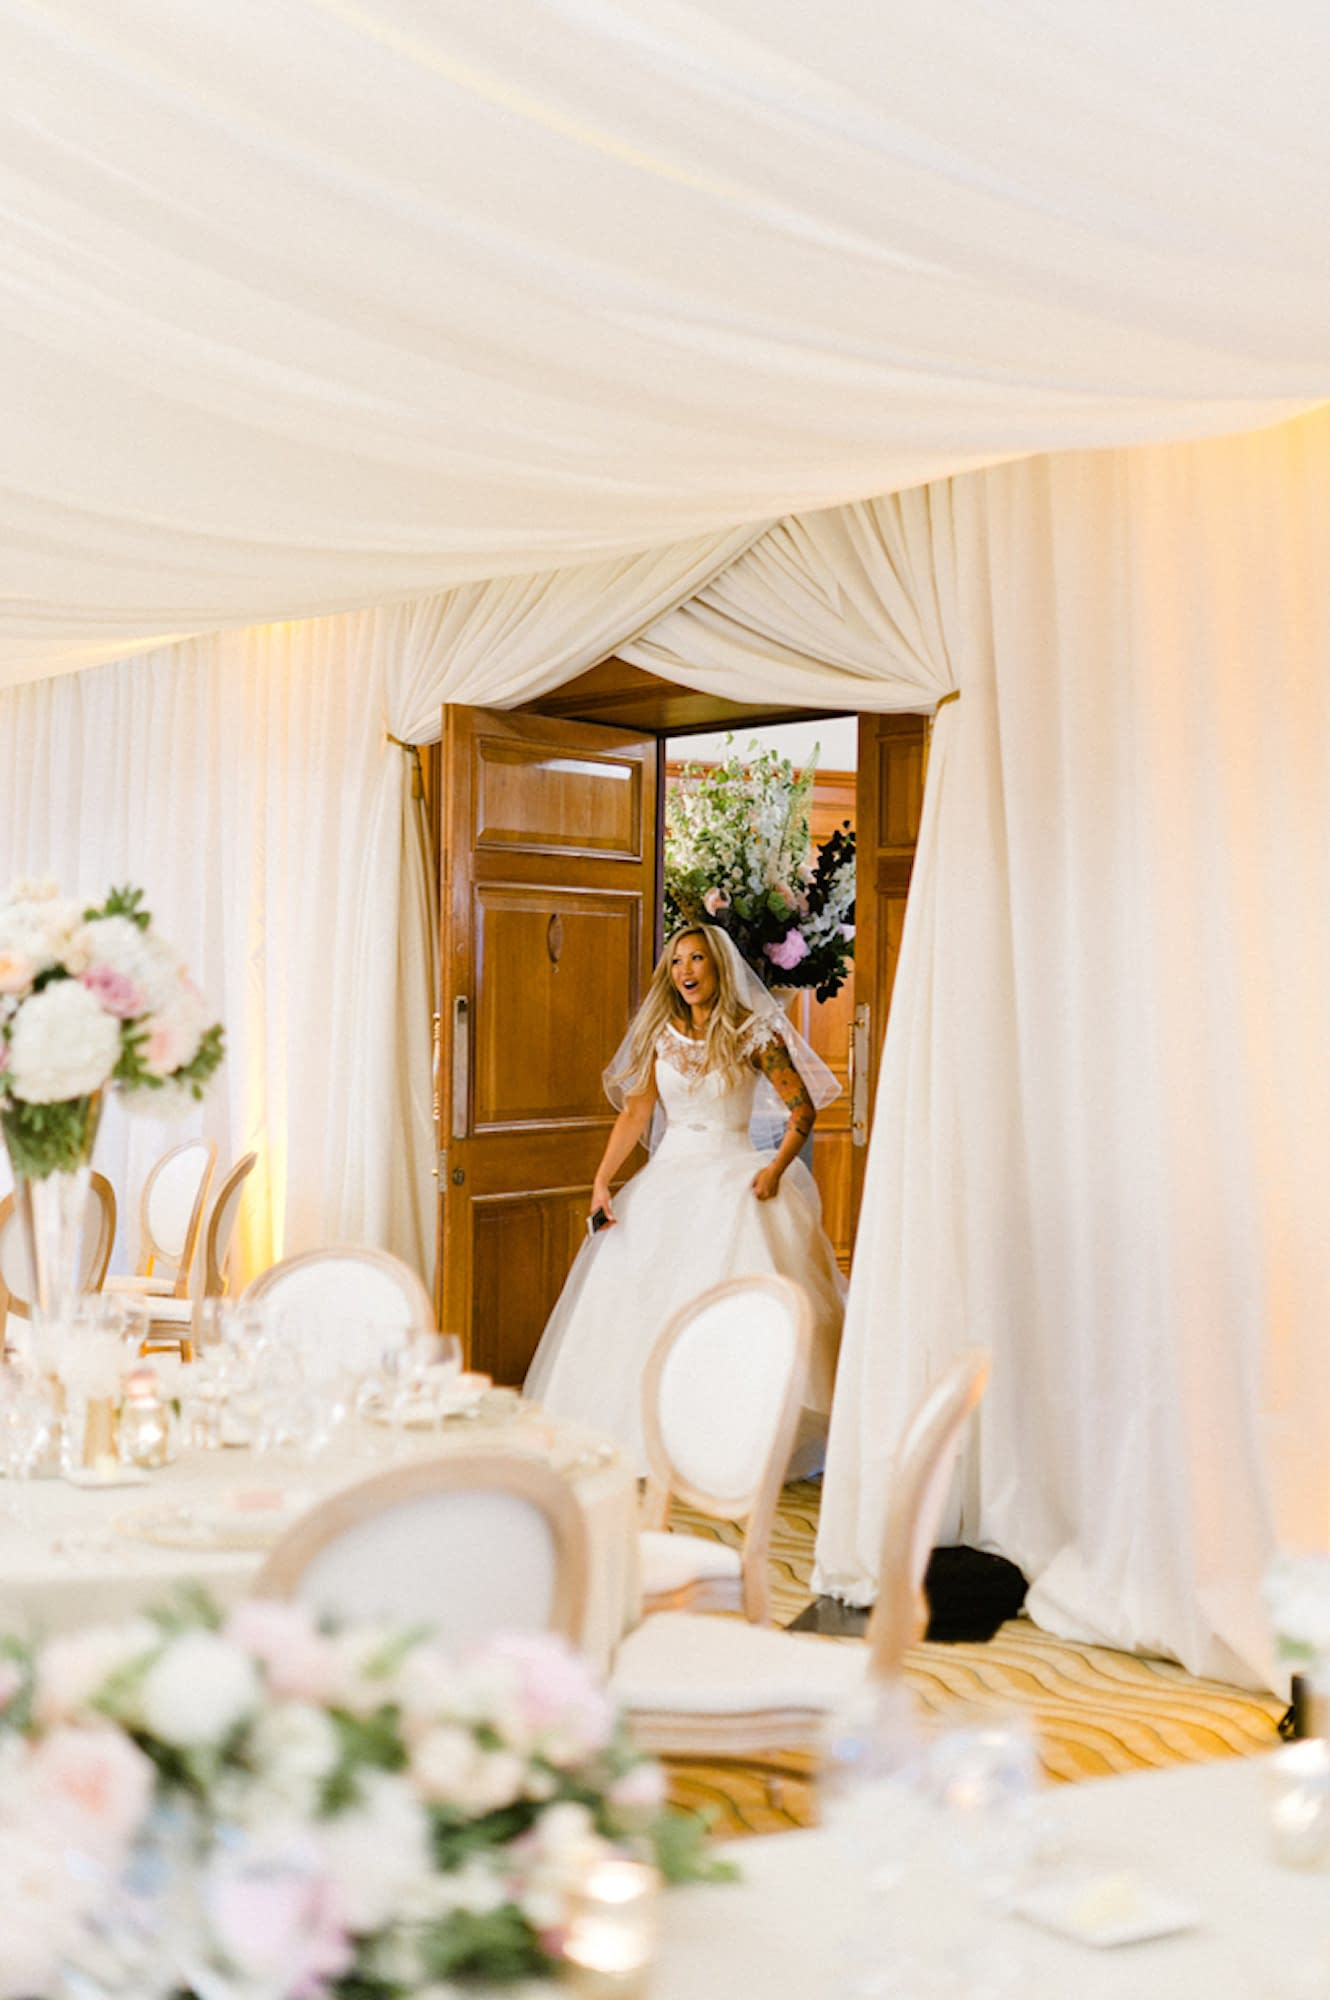 our bride seeing her beautiful soft ivory draping for the first time as part of her luxury wedding venue styling at pennyhill park hotel bagshot surrey uk